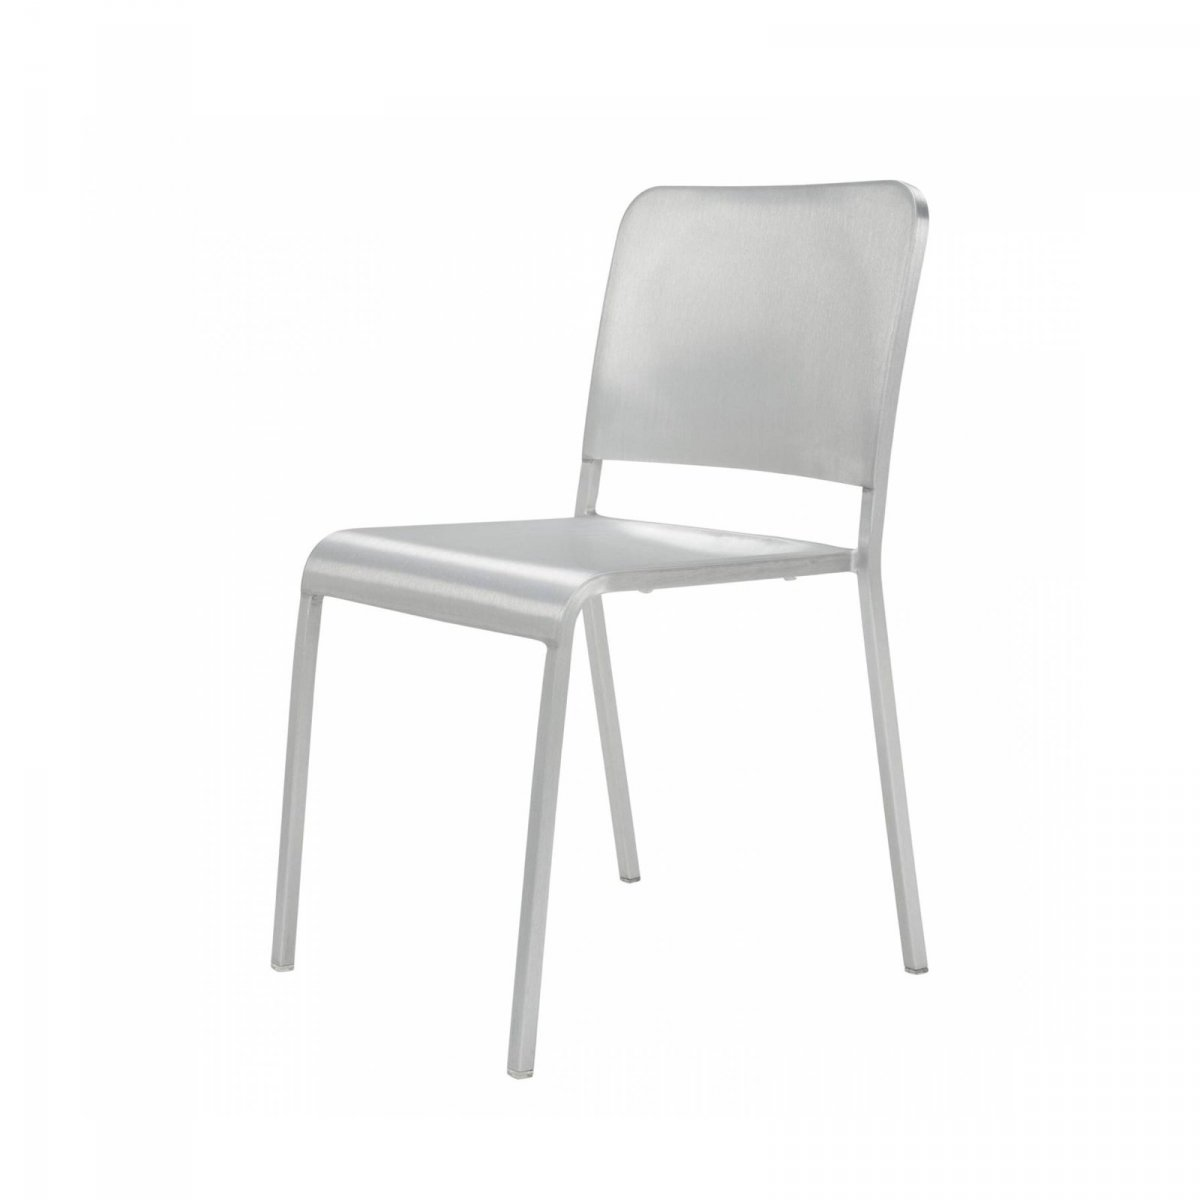 20-06 Stacking Chair.